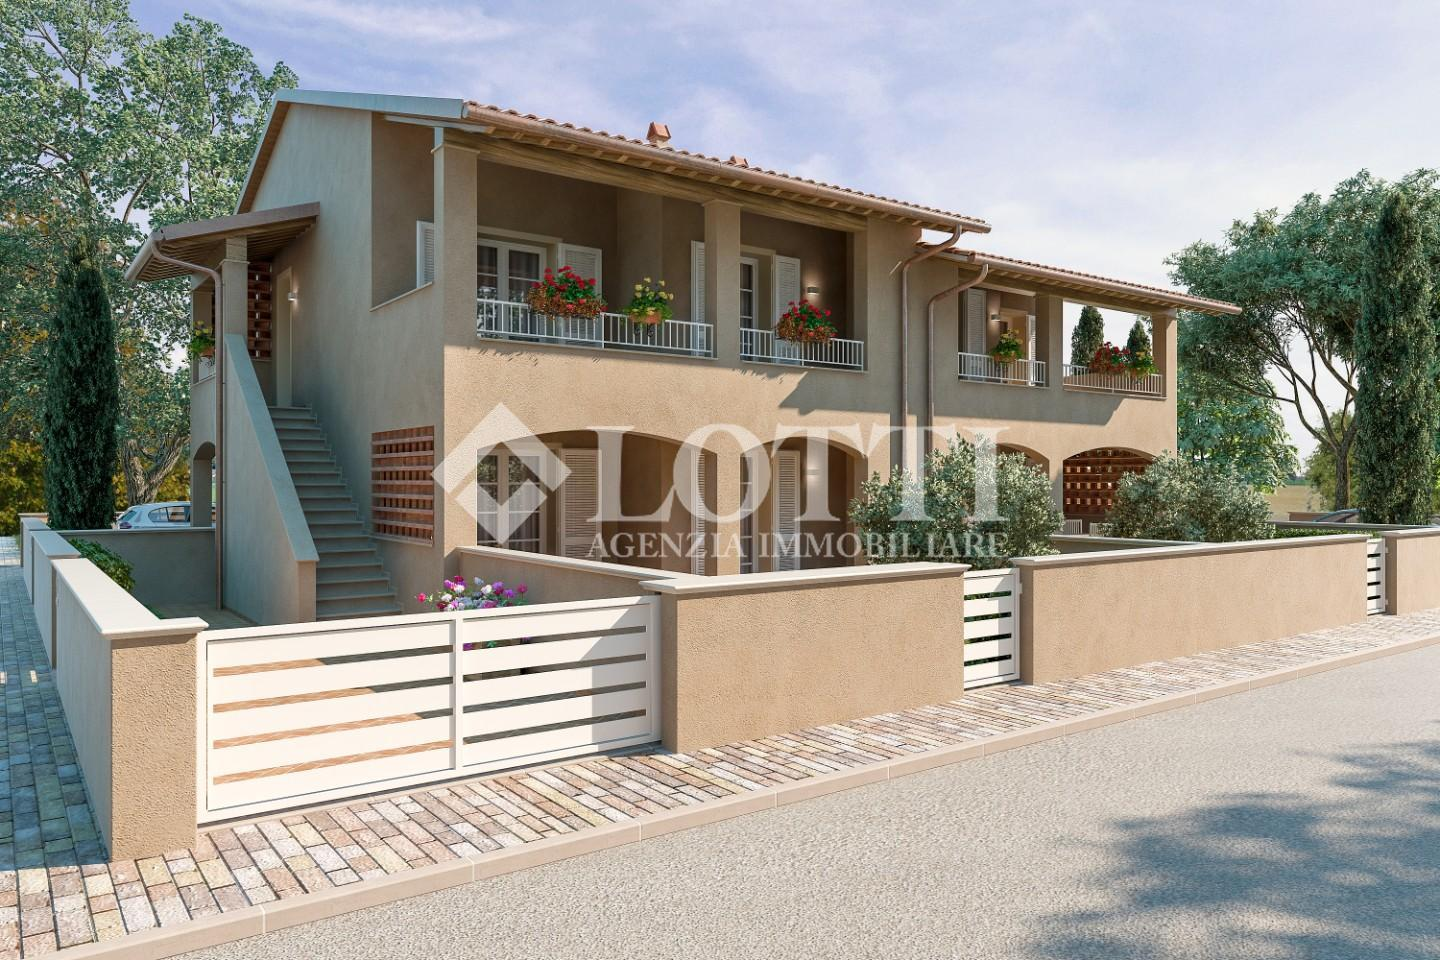 Apartment for sale in Bientina (PI)